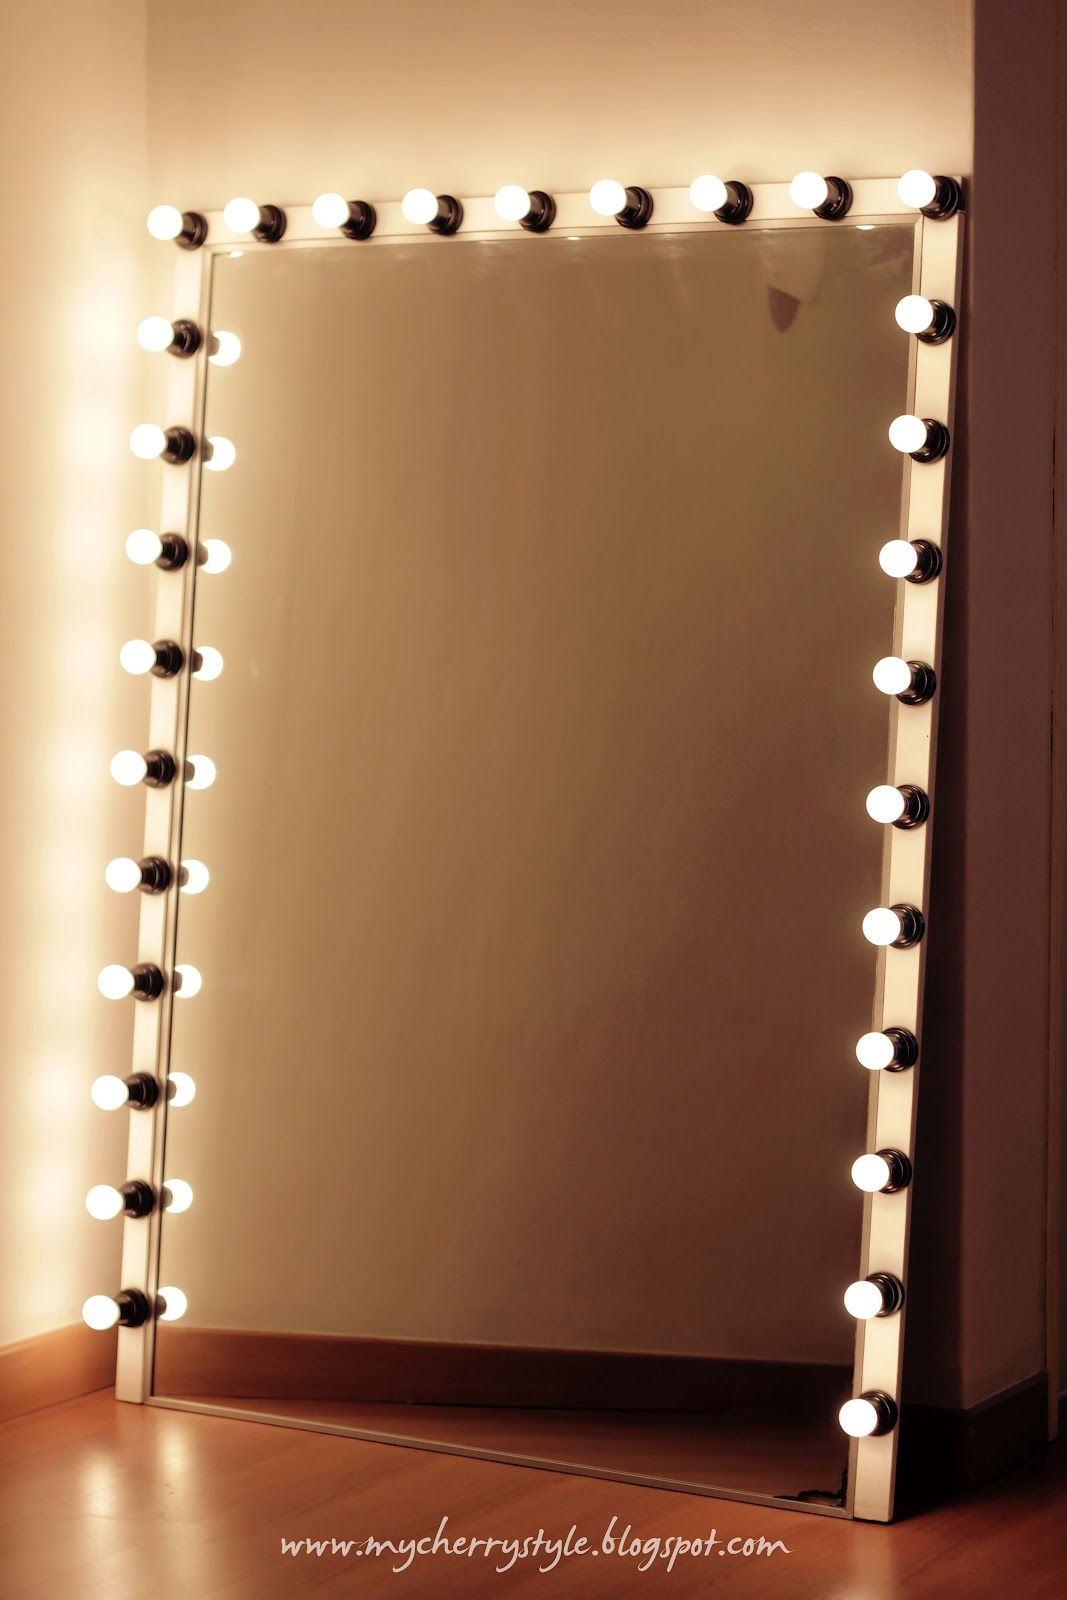 my cherry style: DIY Hollywood-style mirror with lights! Tutorial ...